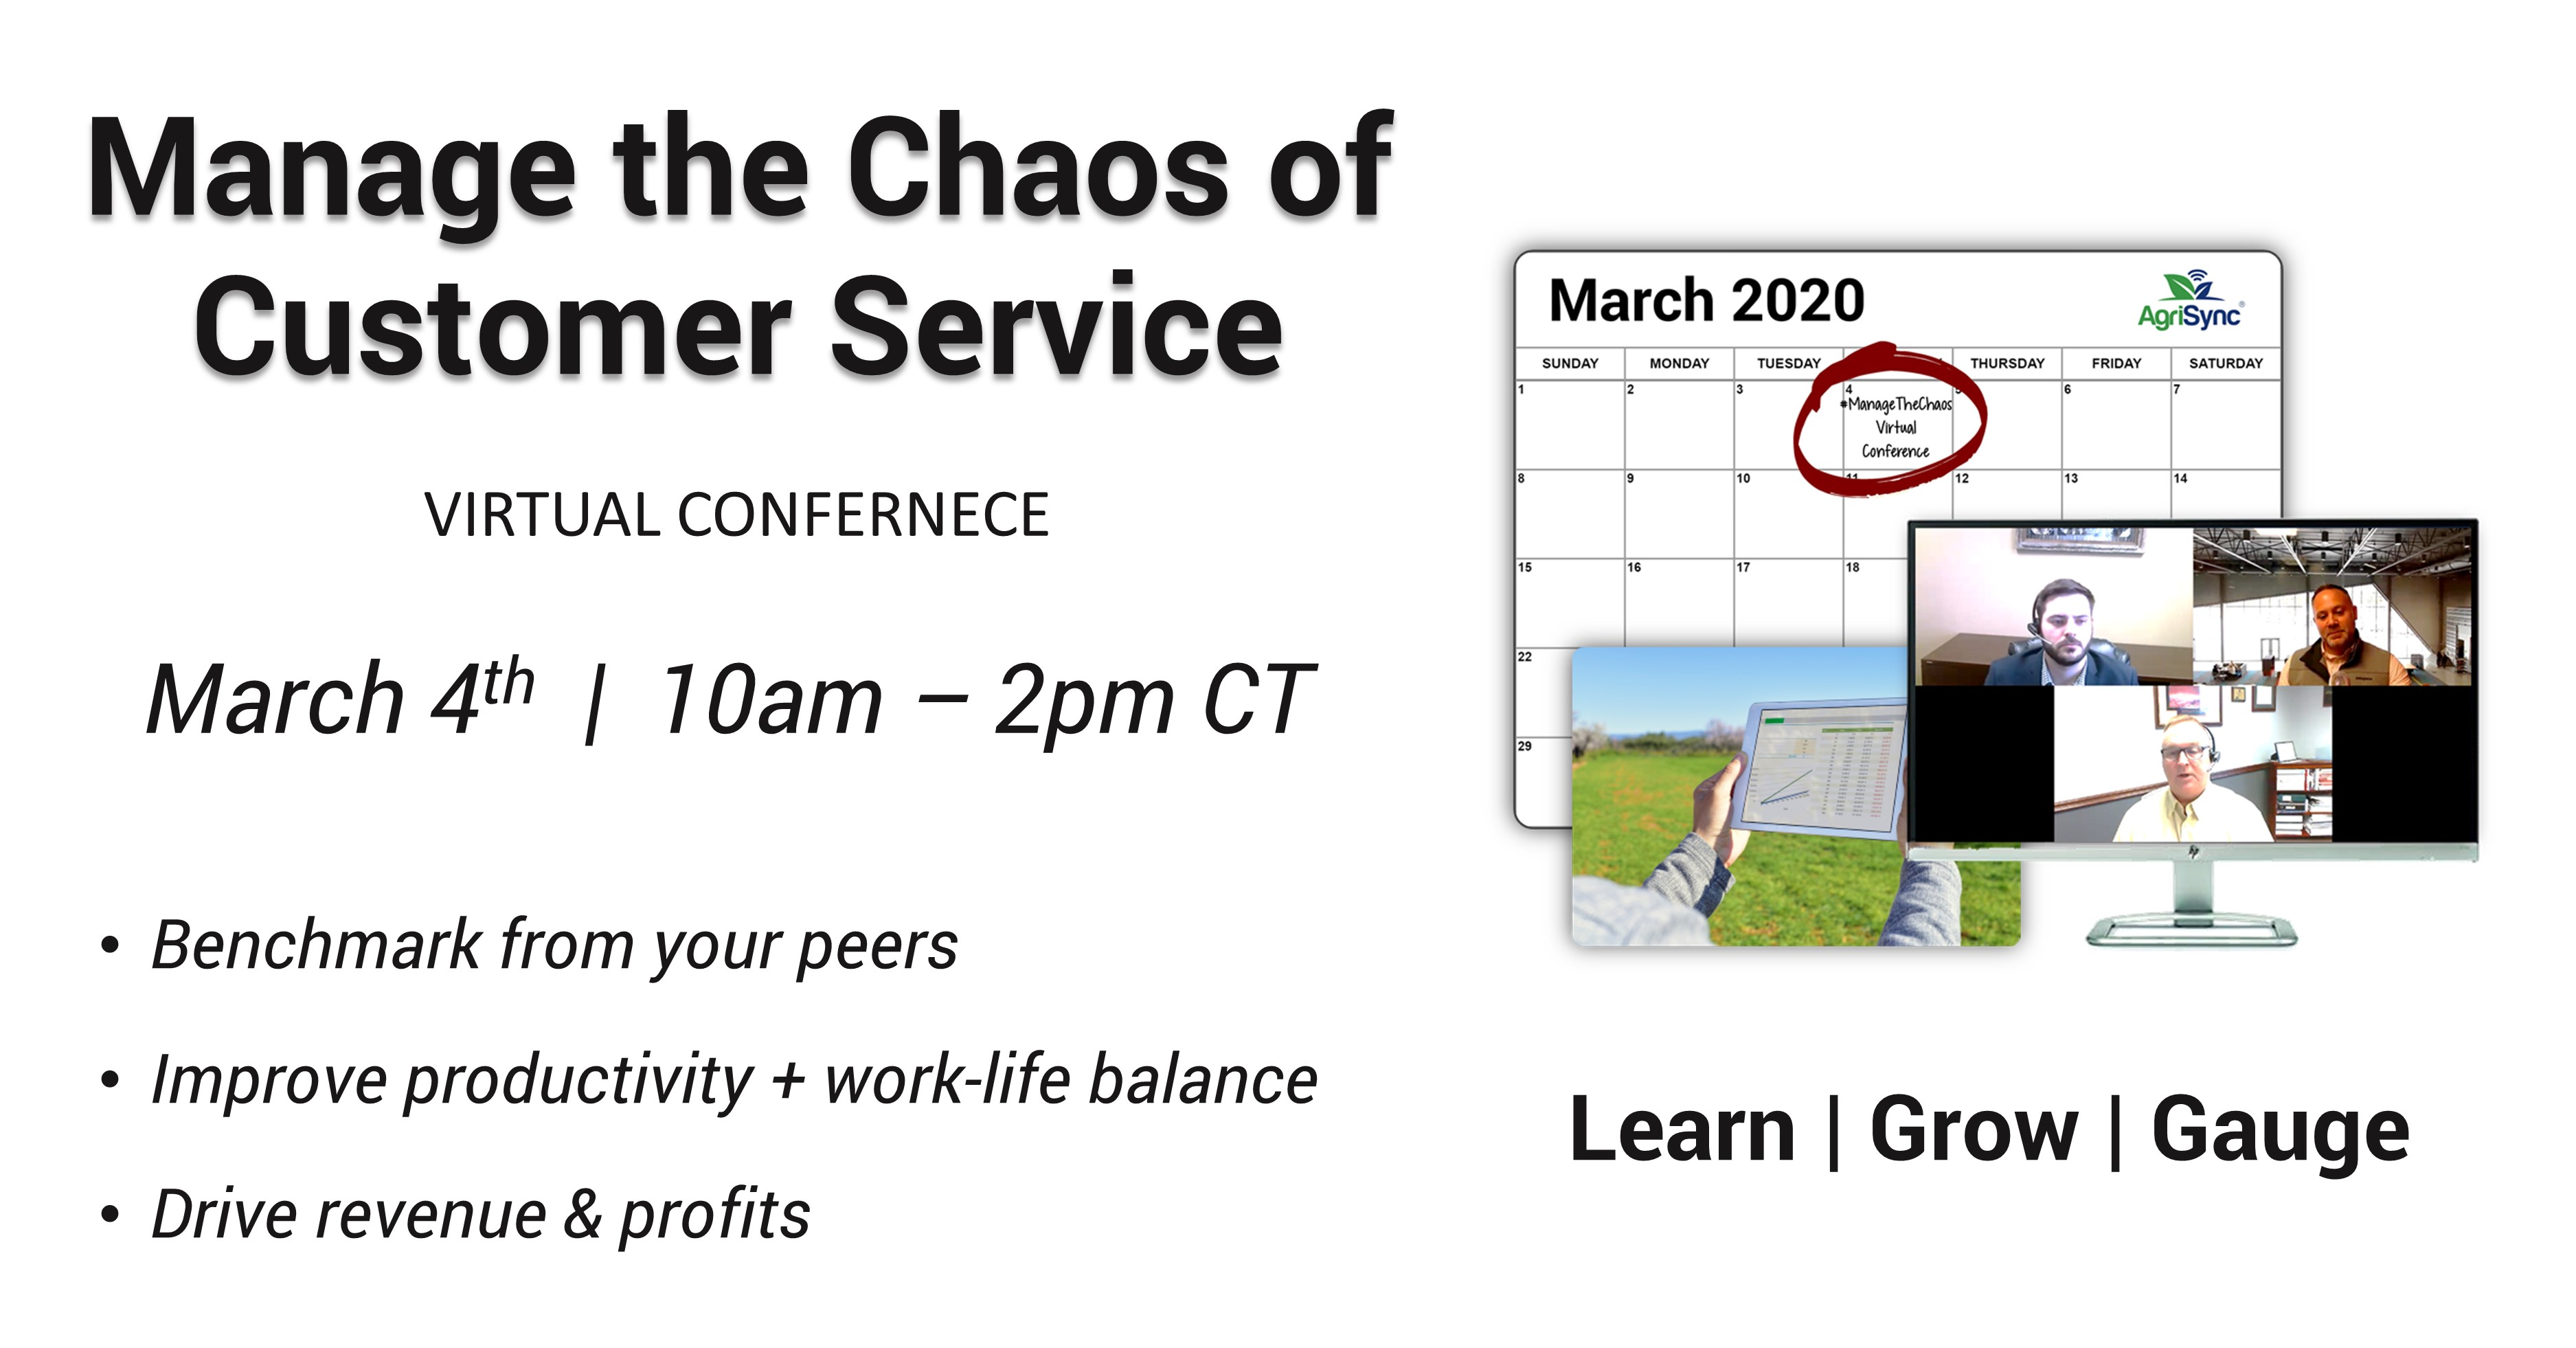 Manage the Chaos of Customer Service Virtual Conference Registration